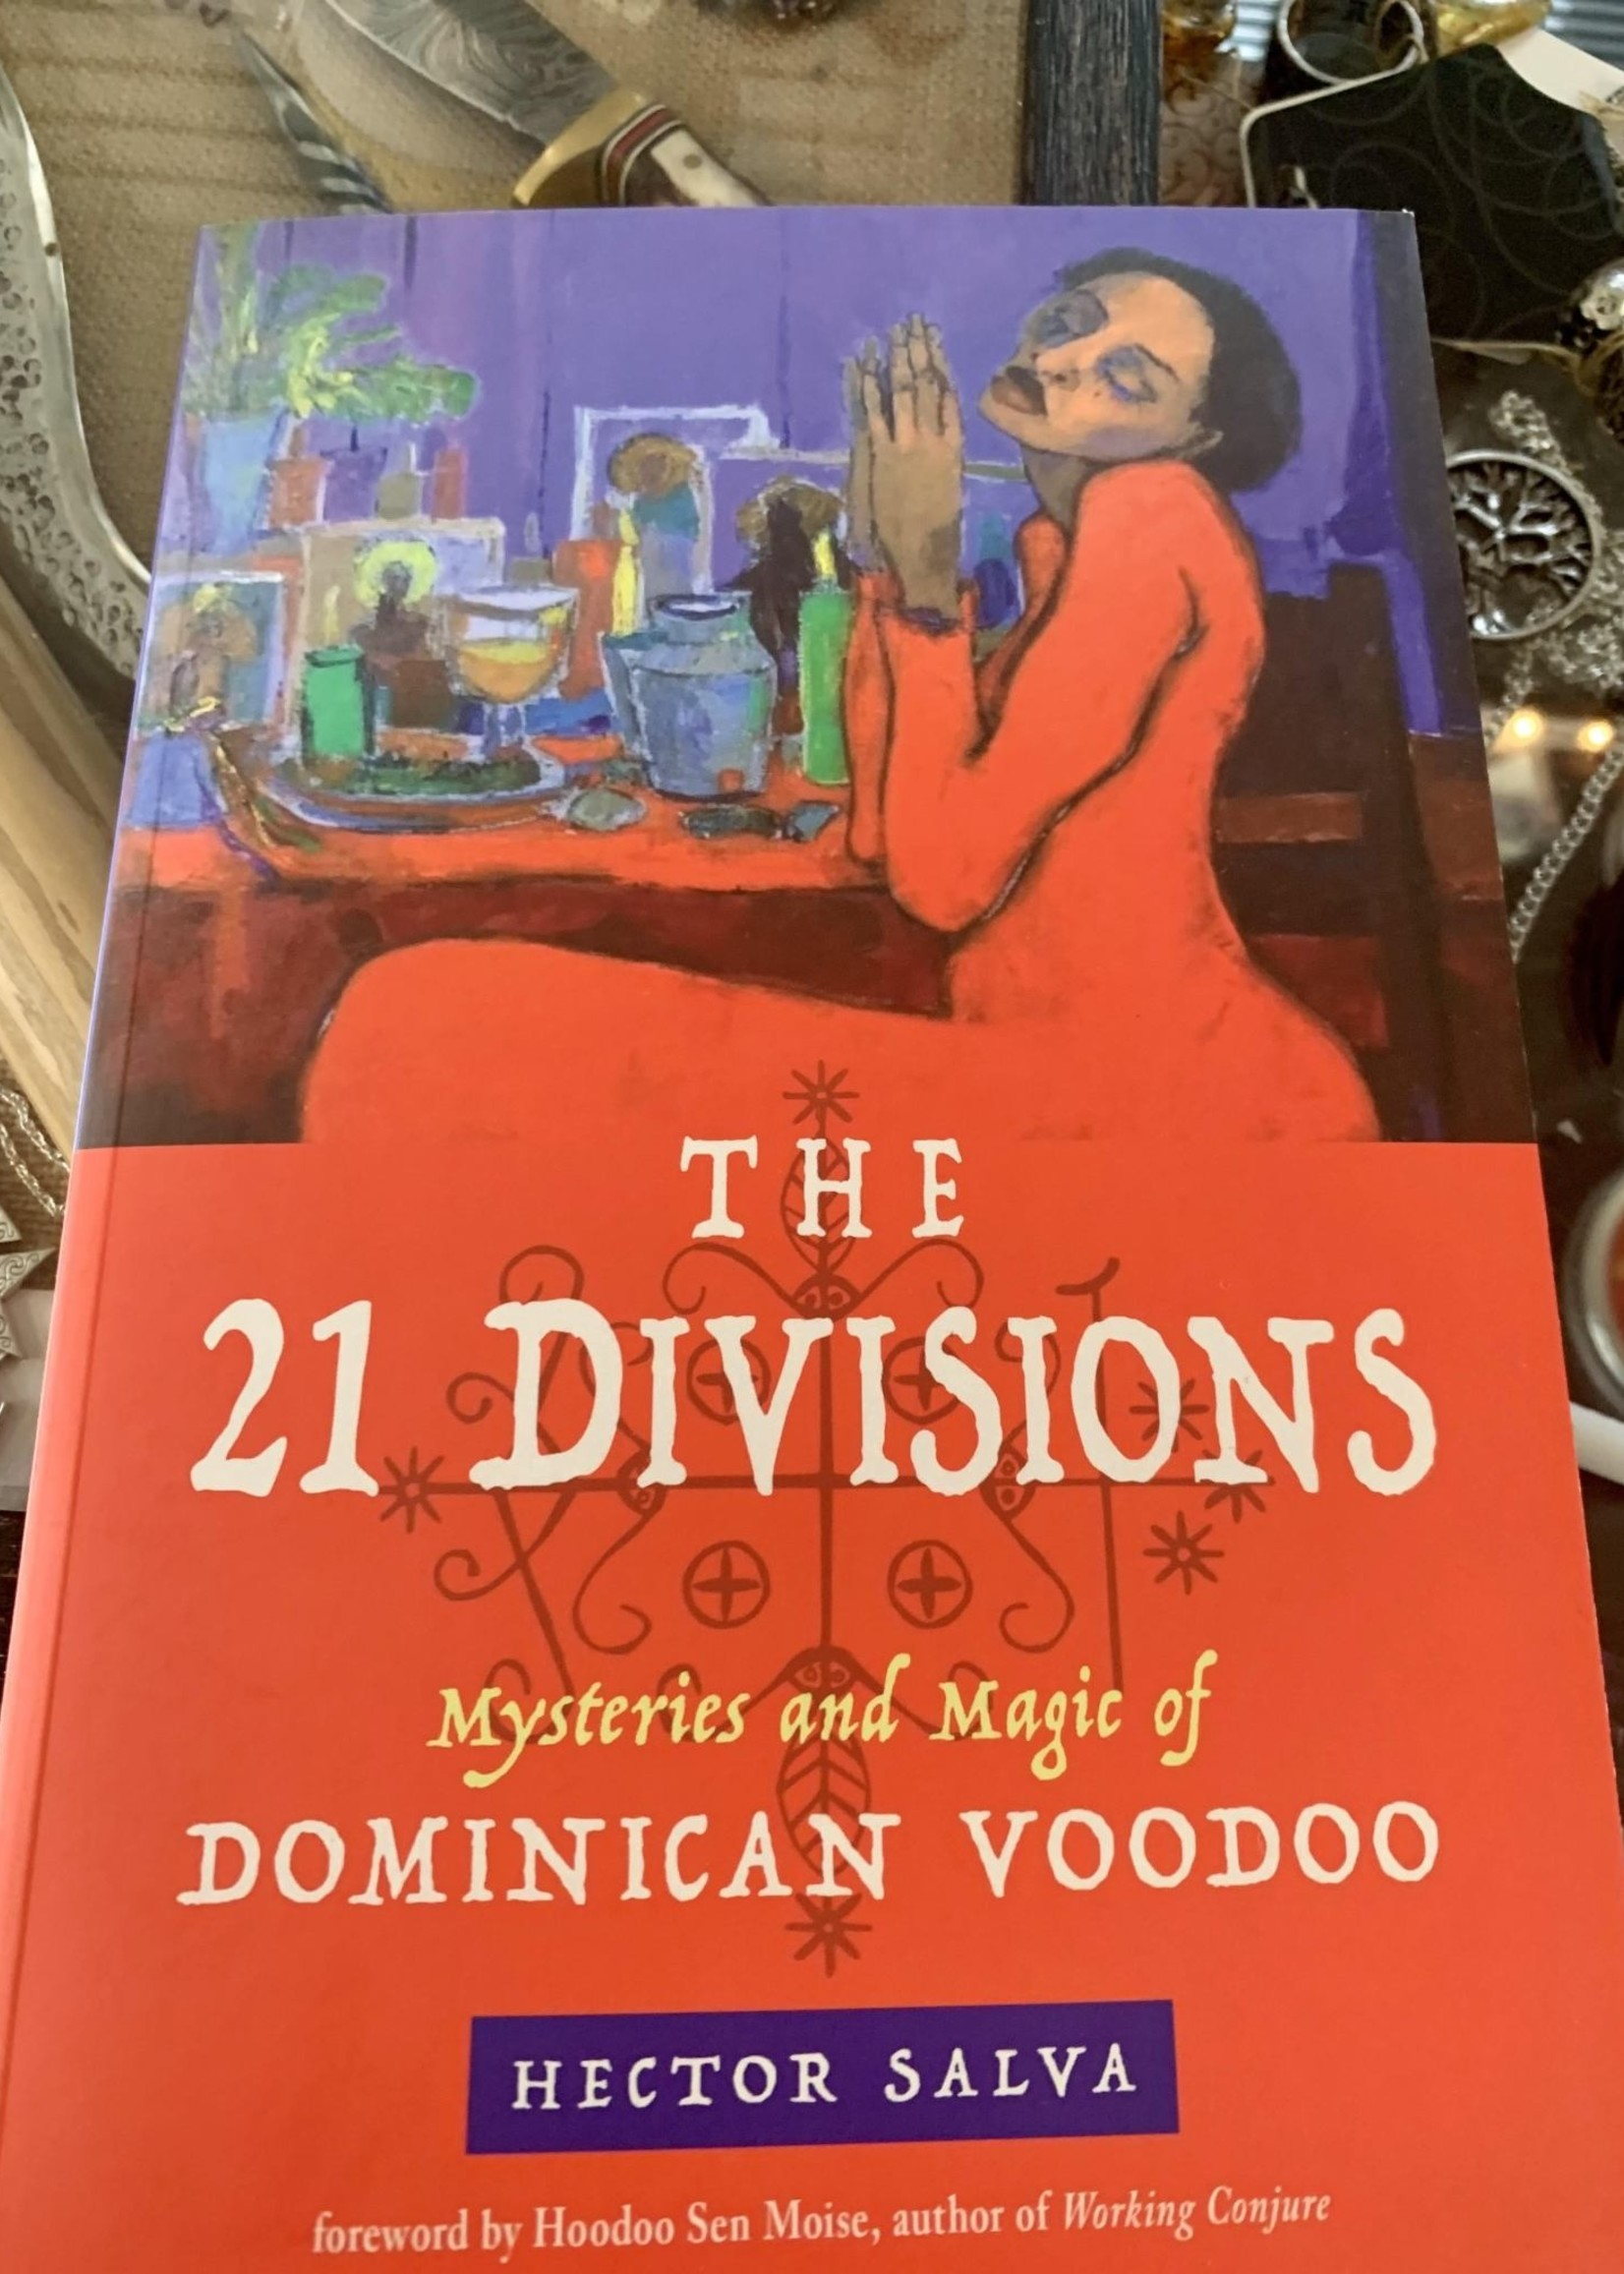 The 21 Divisions Mysteries and Magic of Dominican Voodoo -  Hector Salva, Foreword Hoodoo Sen Moise